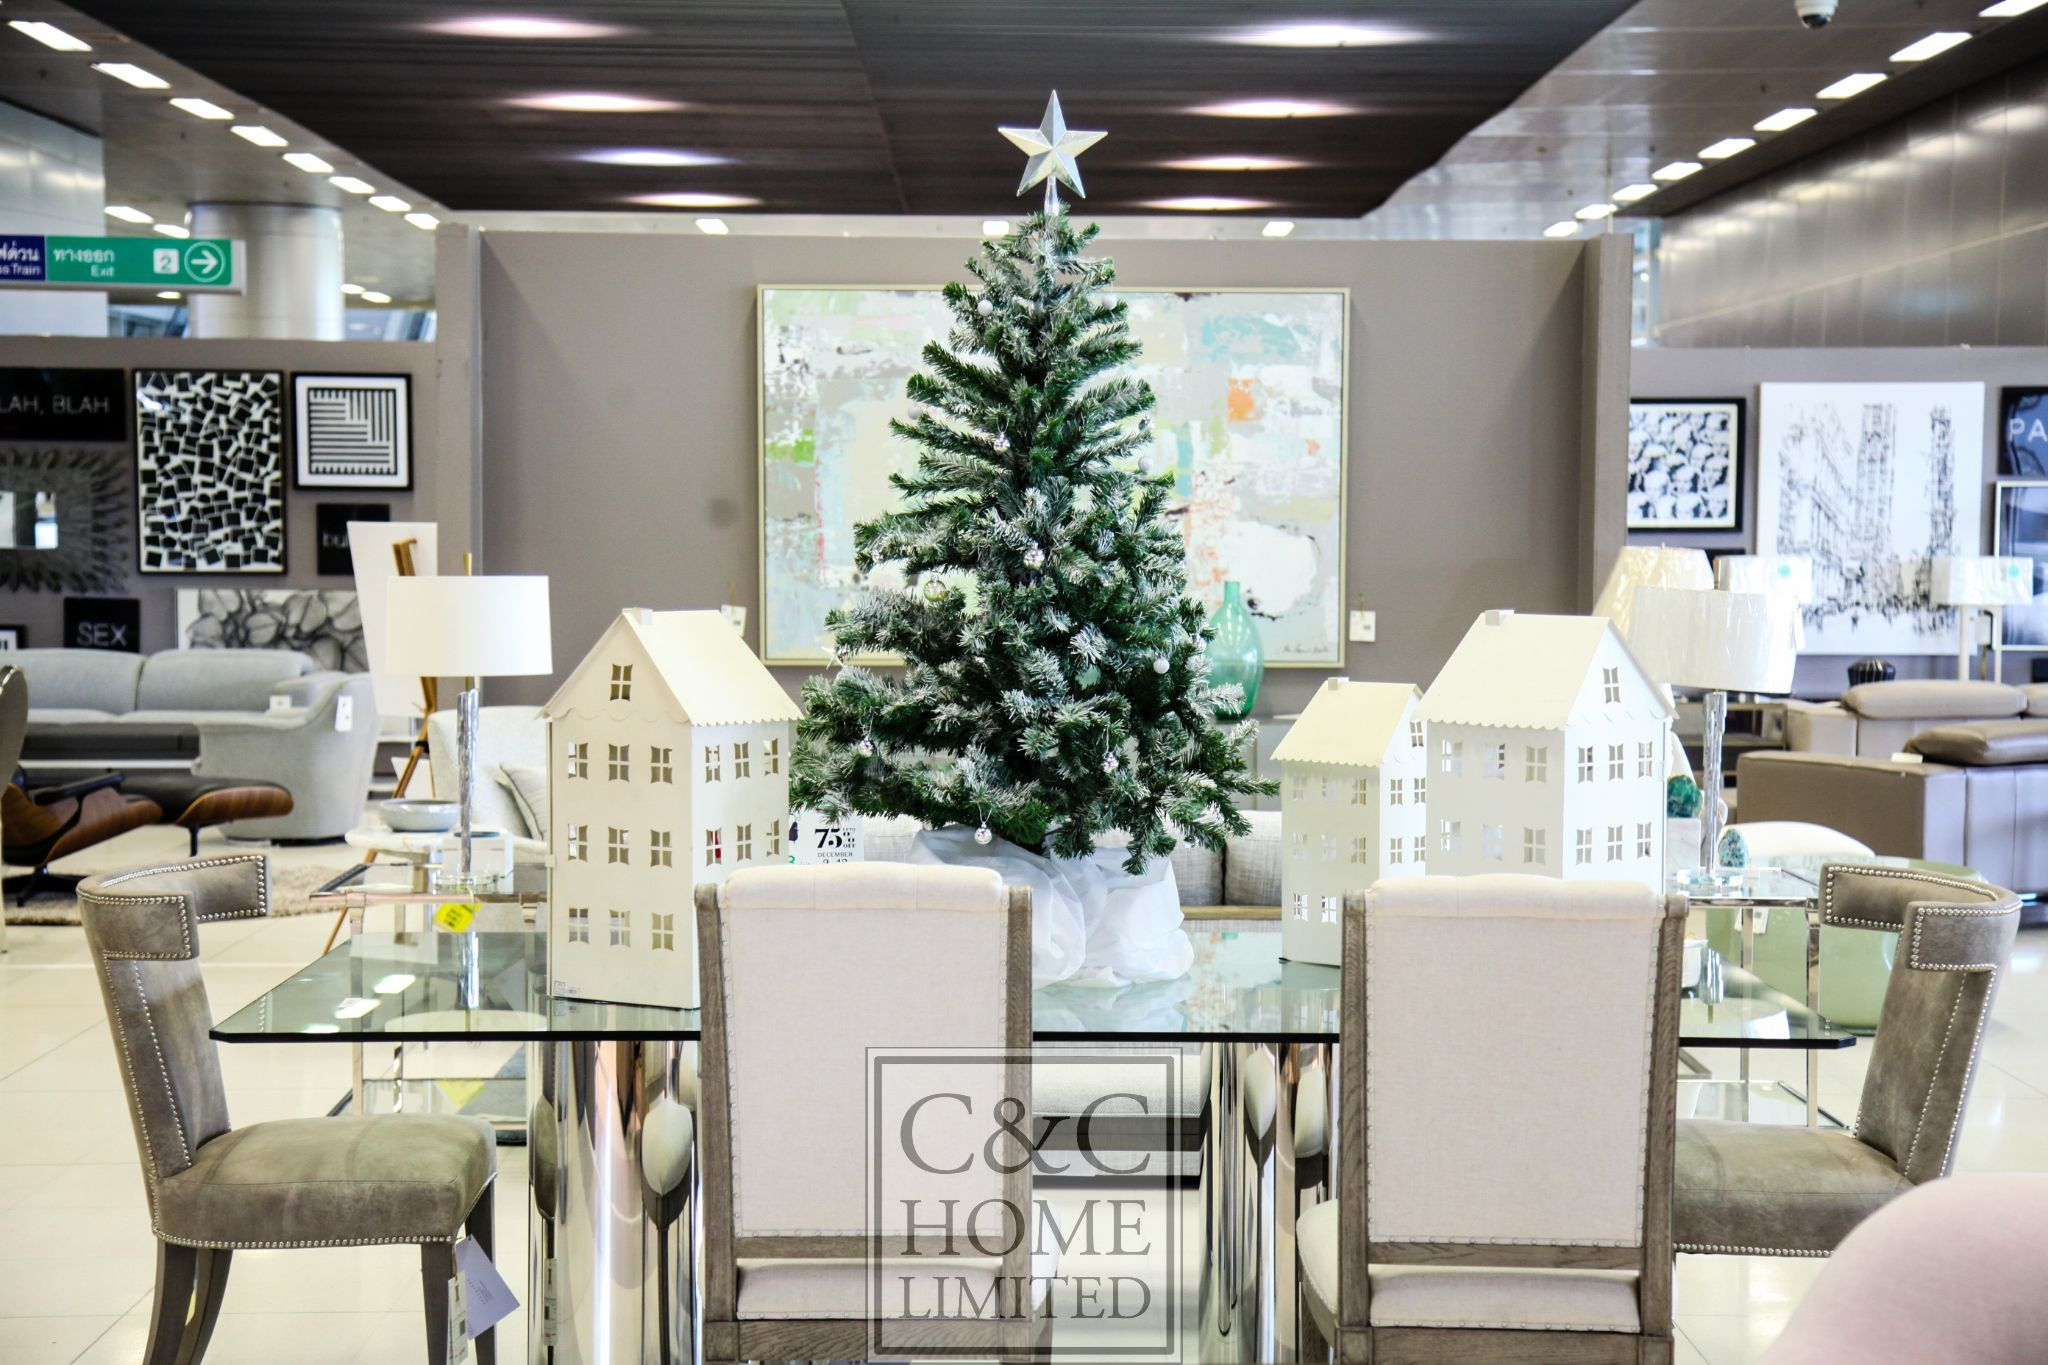 Spend Your Holiday Shopping For Your Upcoming Holidays C&C Home